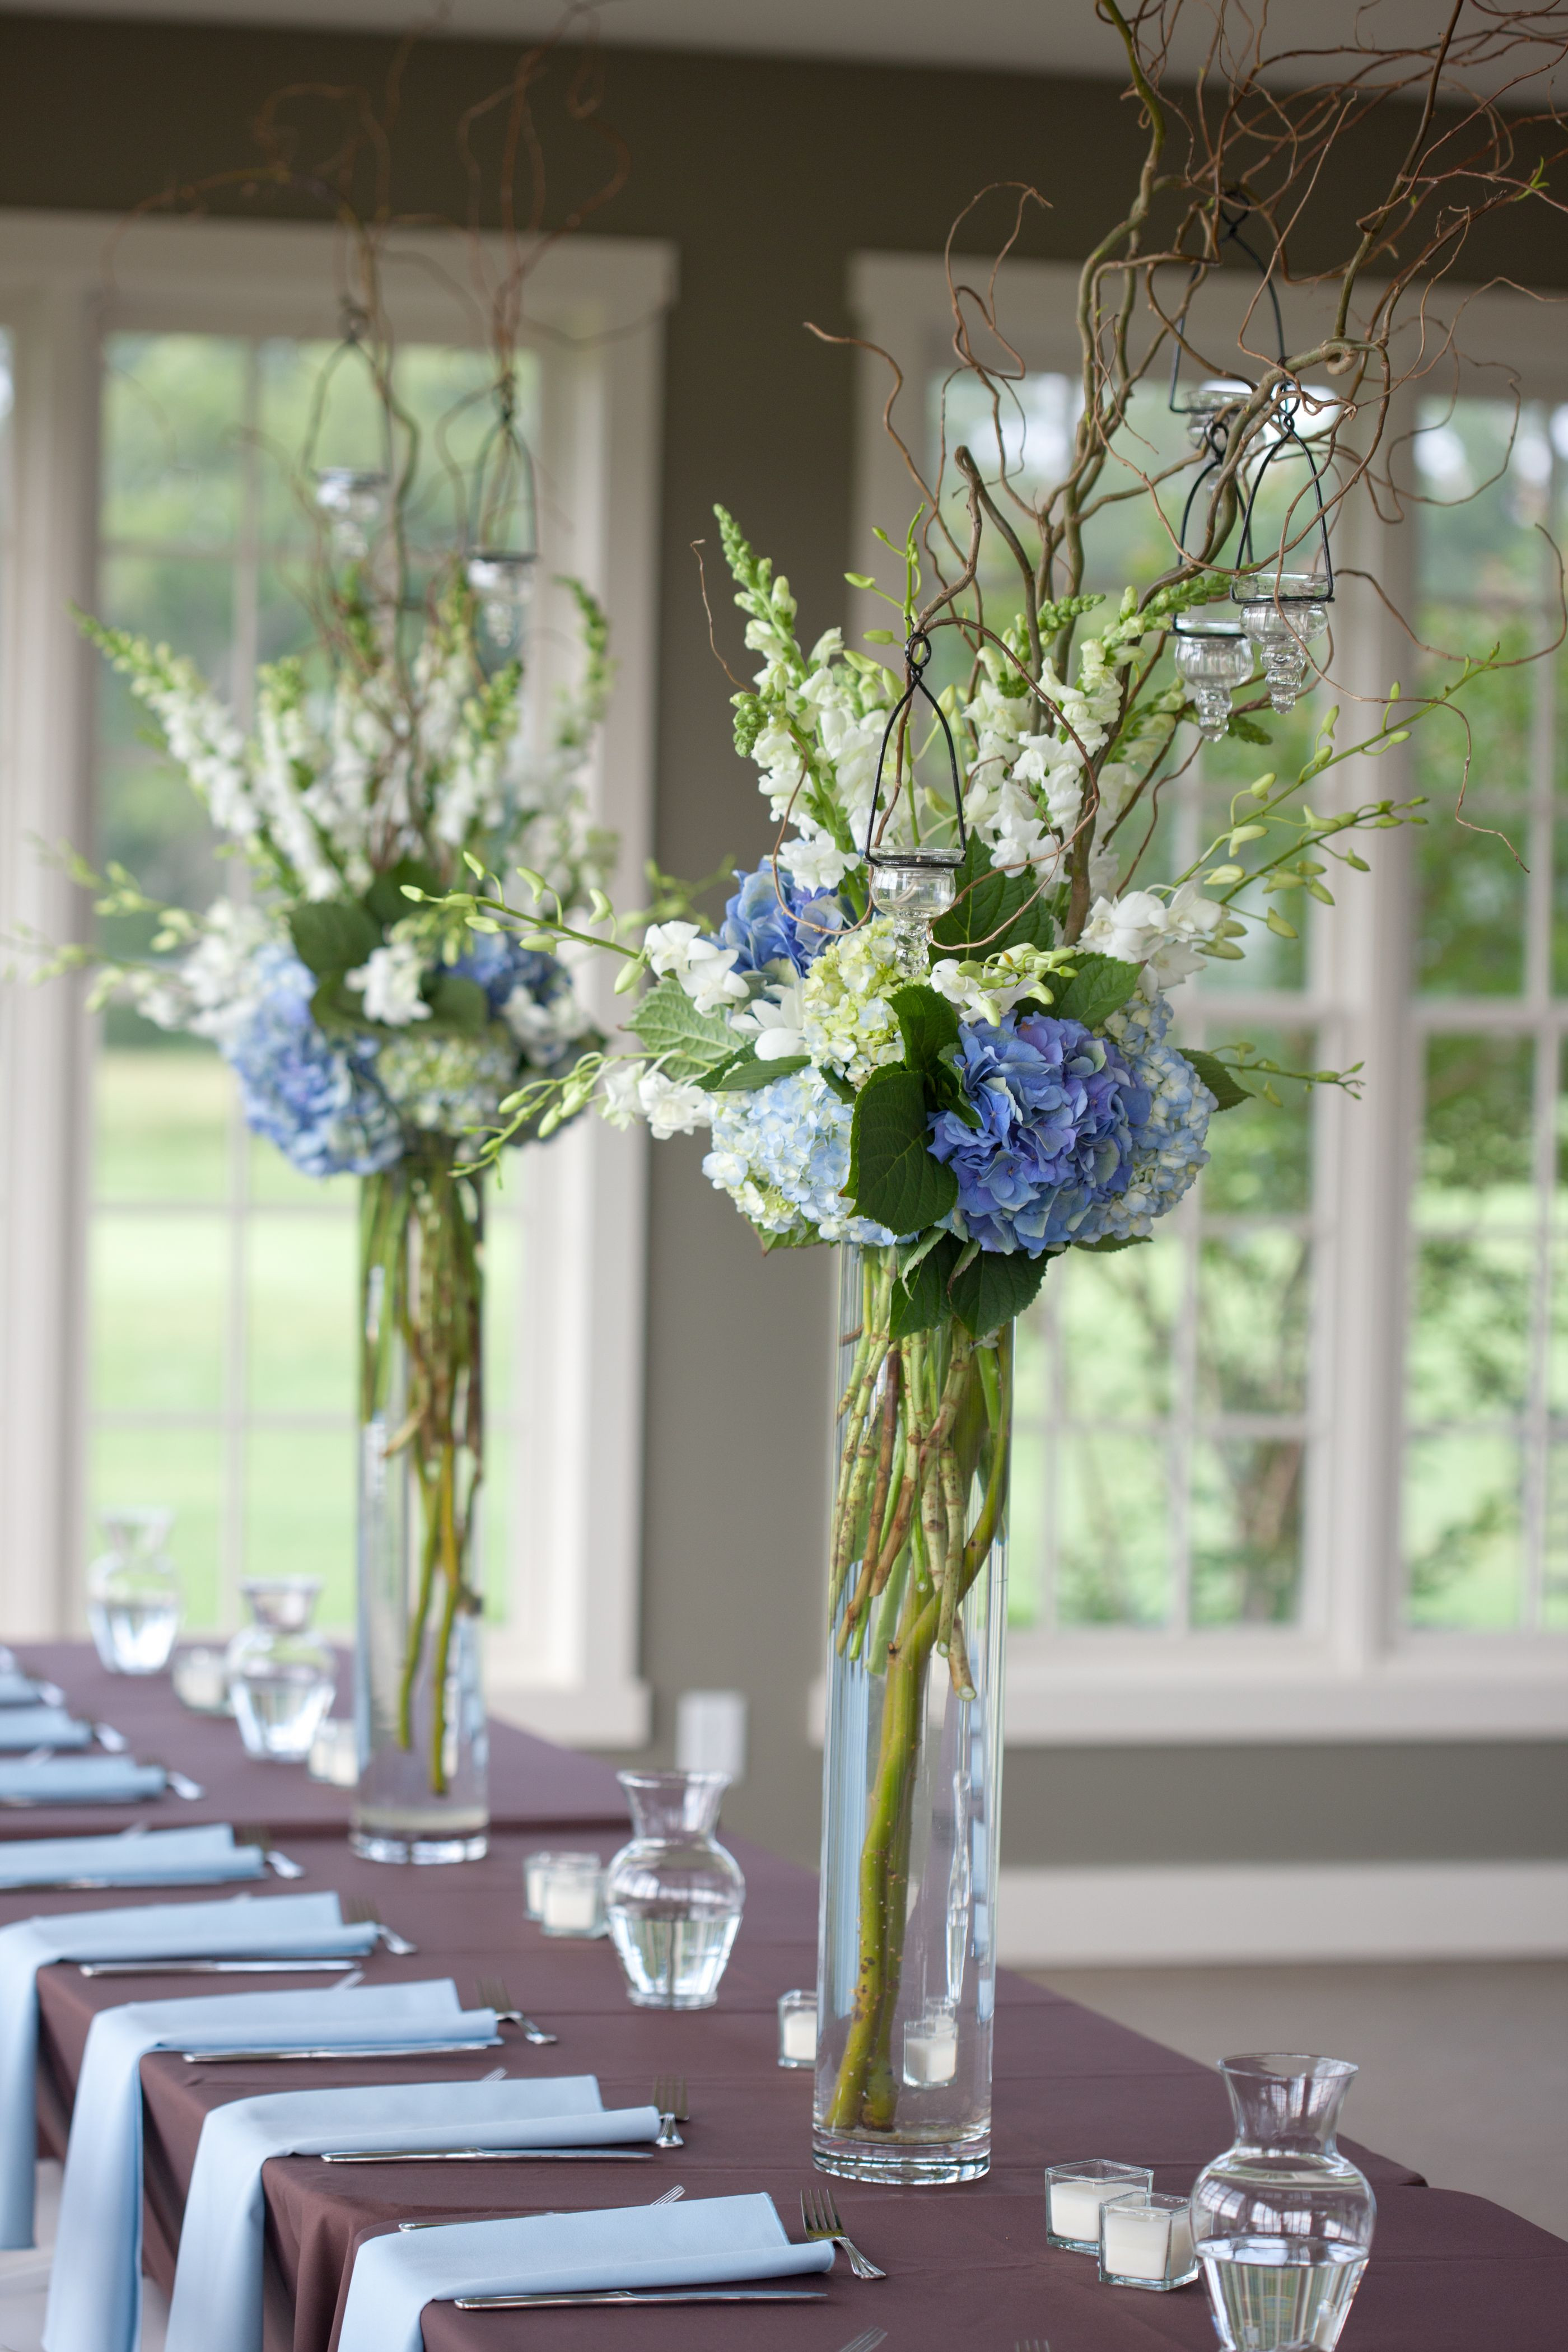 Next Day Delivery Flowers London New Blue and White Reception Wedding Flowers Wedding Decor Wedding